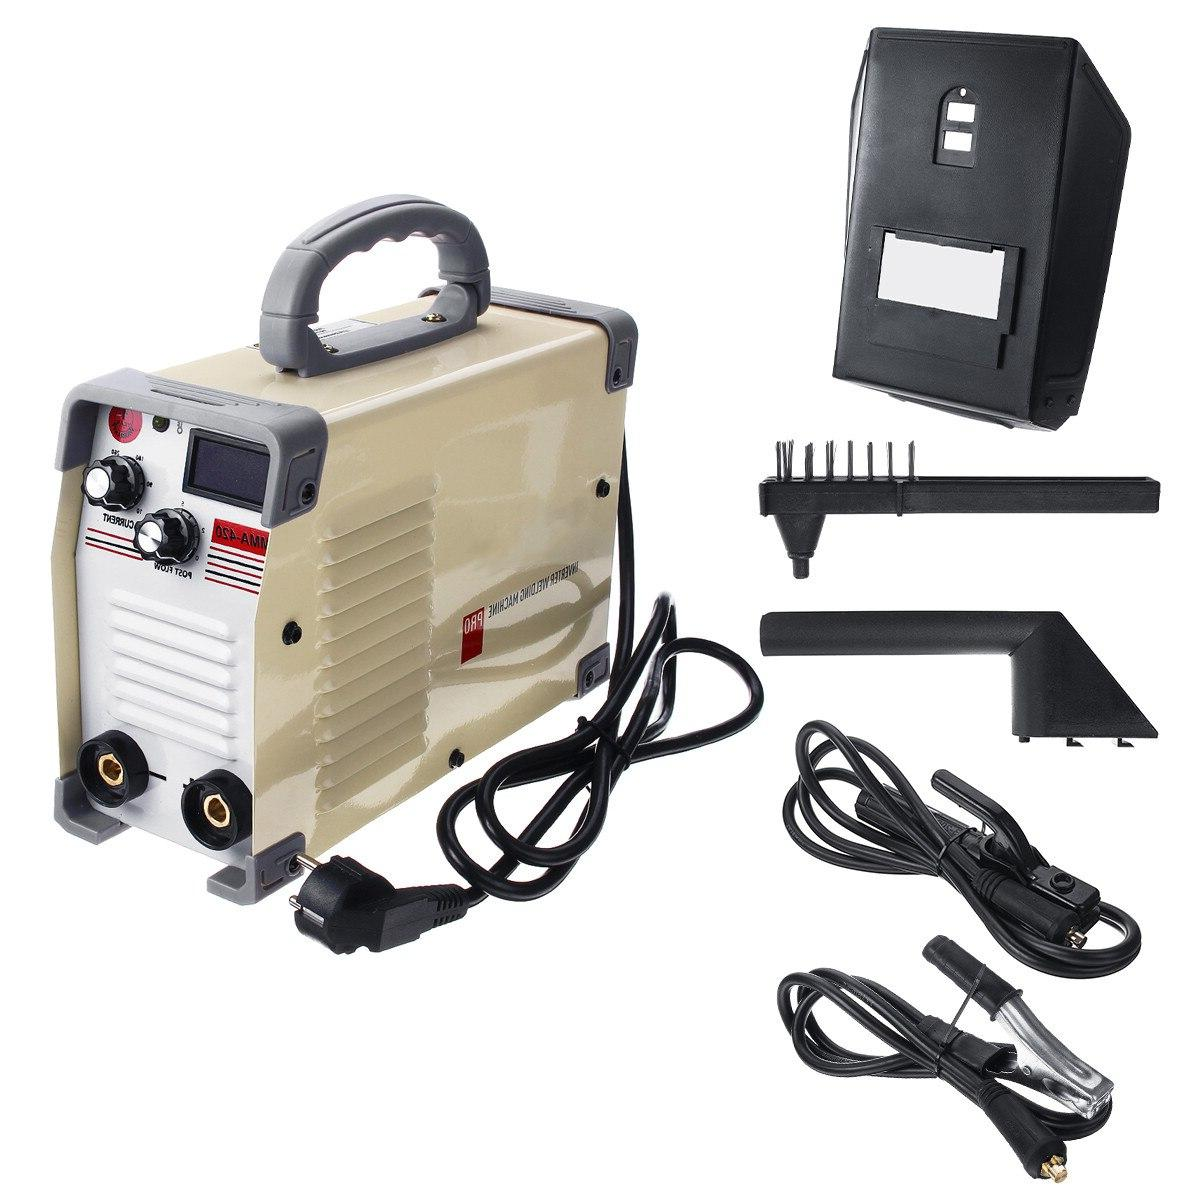 220V <font><b>Tig</b></font> Inverter 10-420A DC Welding Machine With Clamp Welding Working